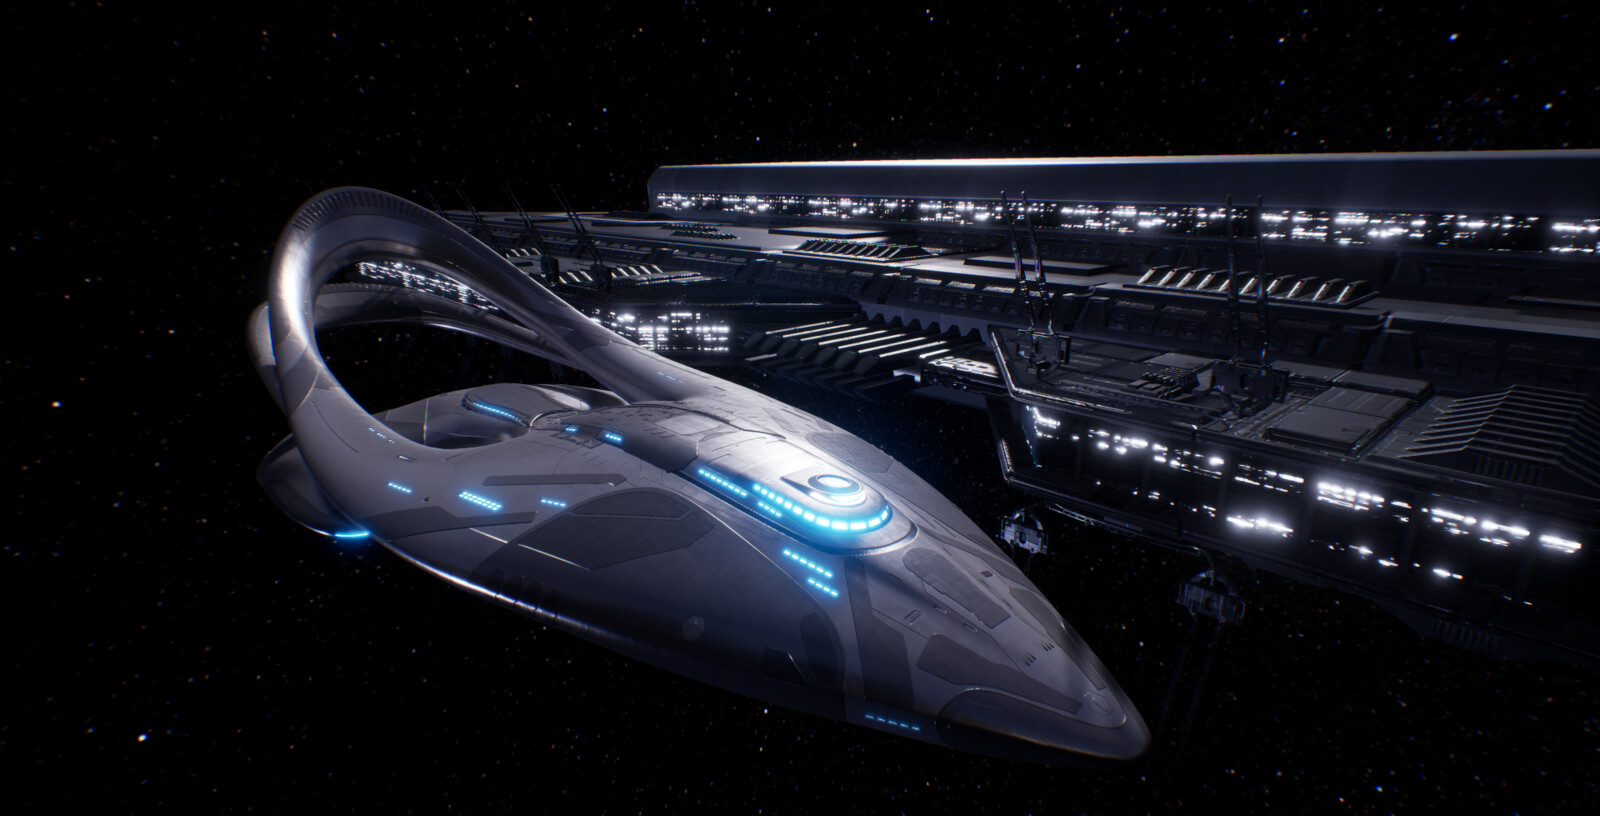 The Orville Union Space Station